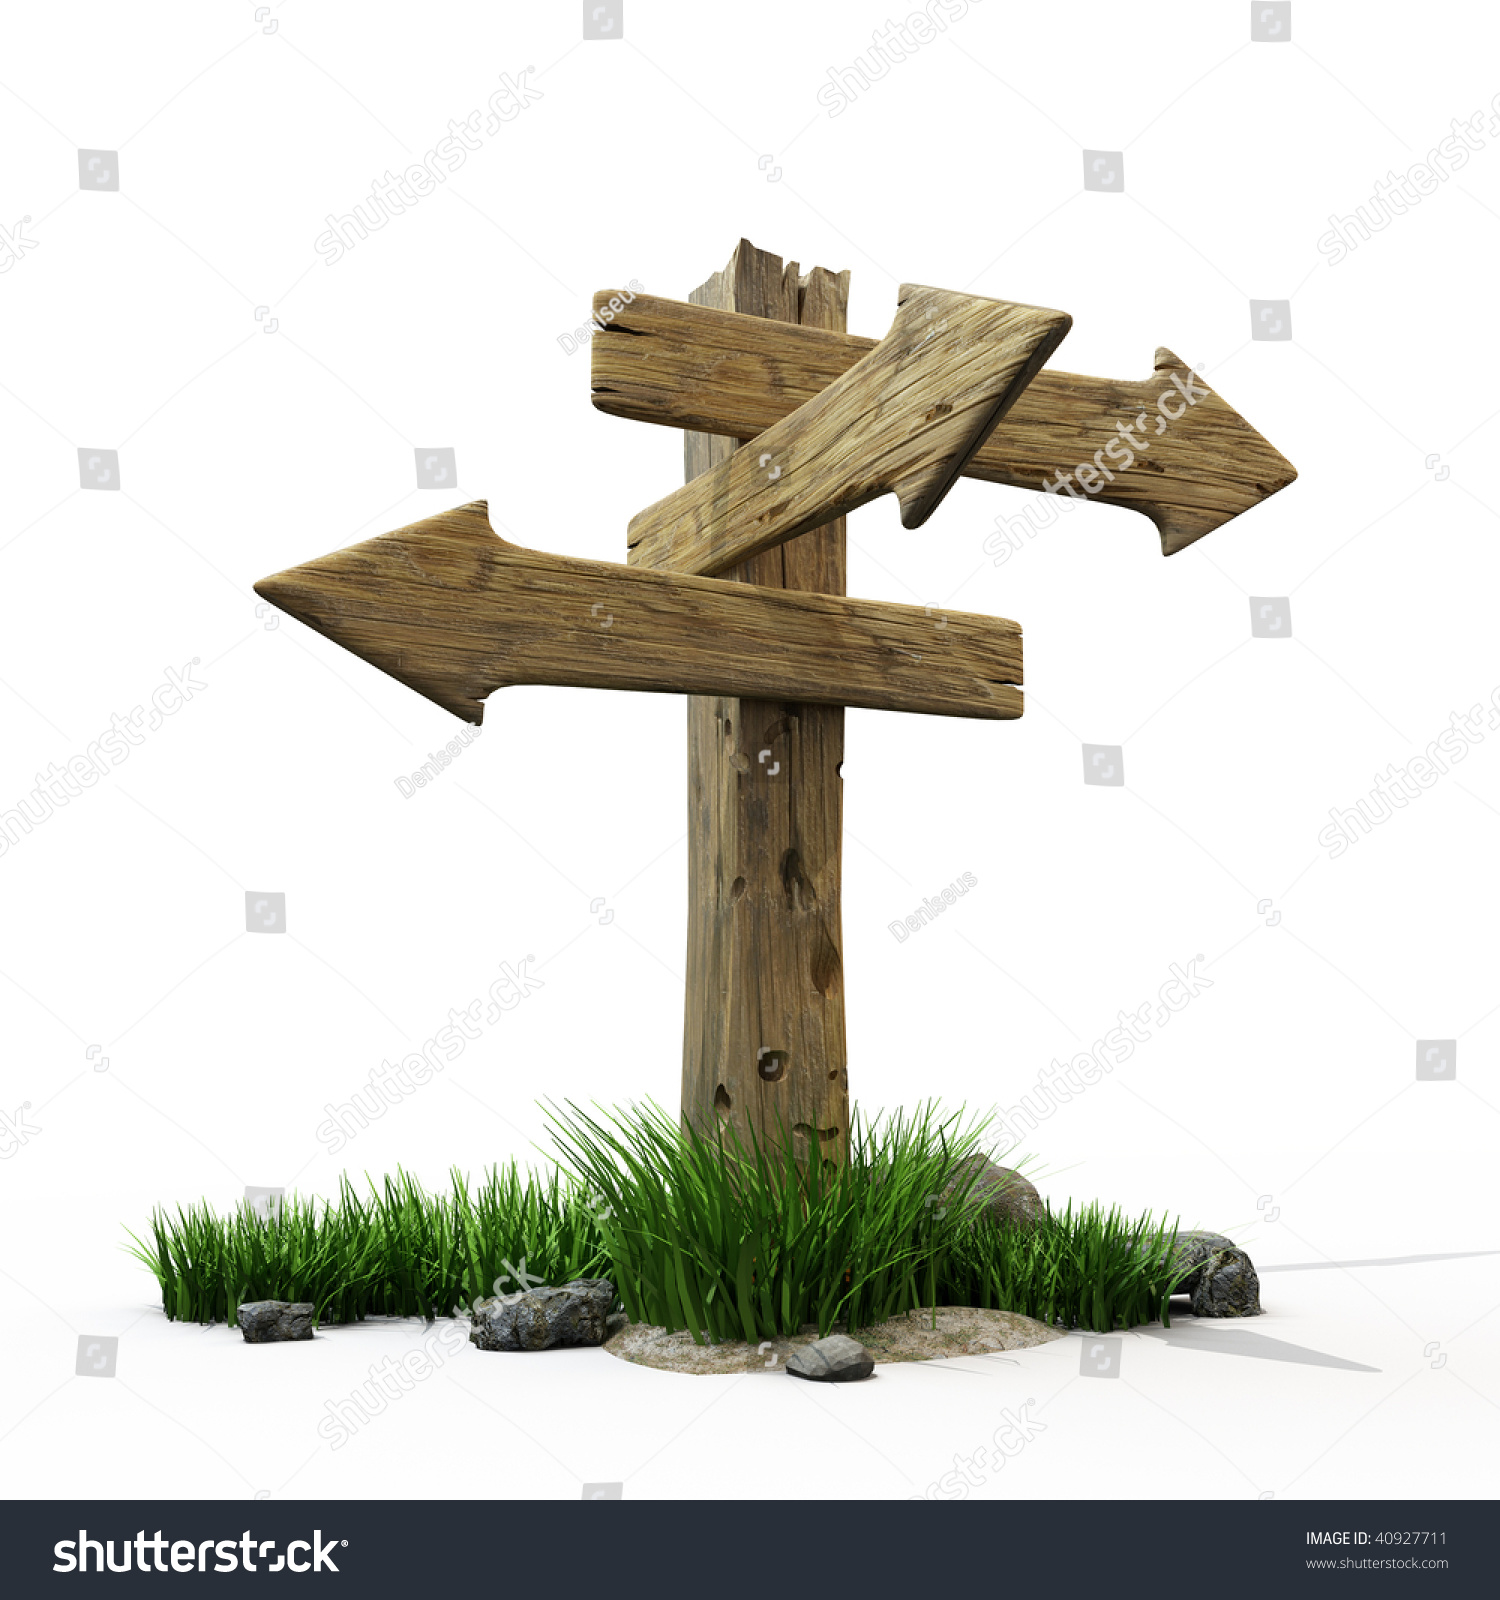 old wooden road sign stock illustration 40927711